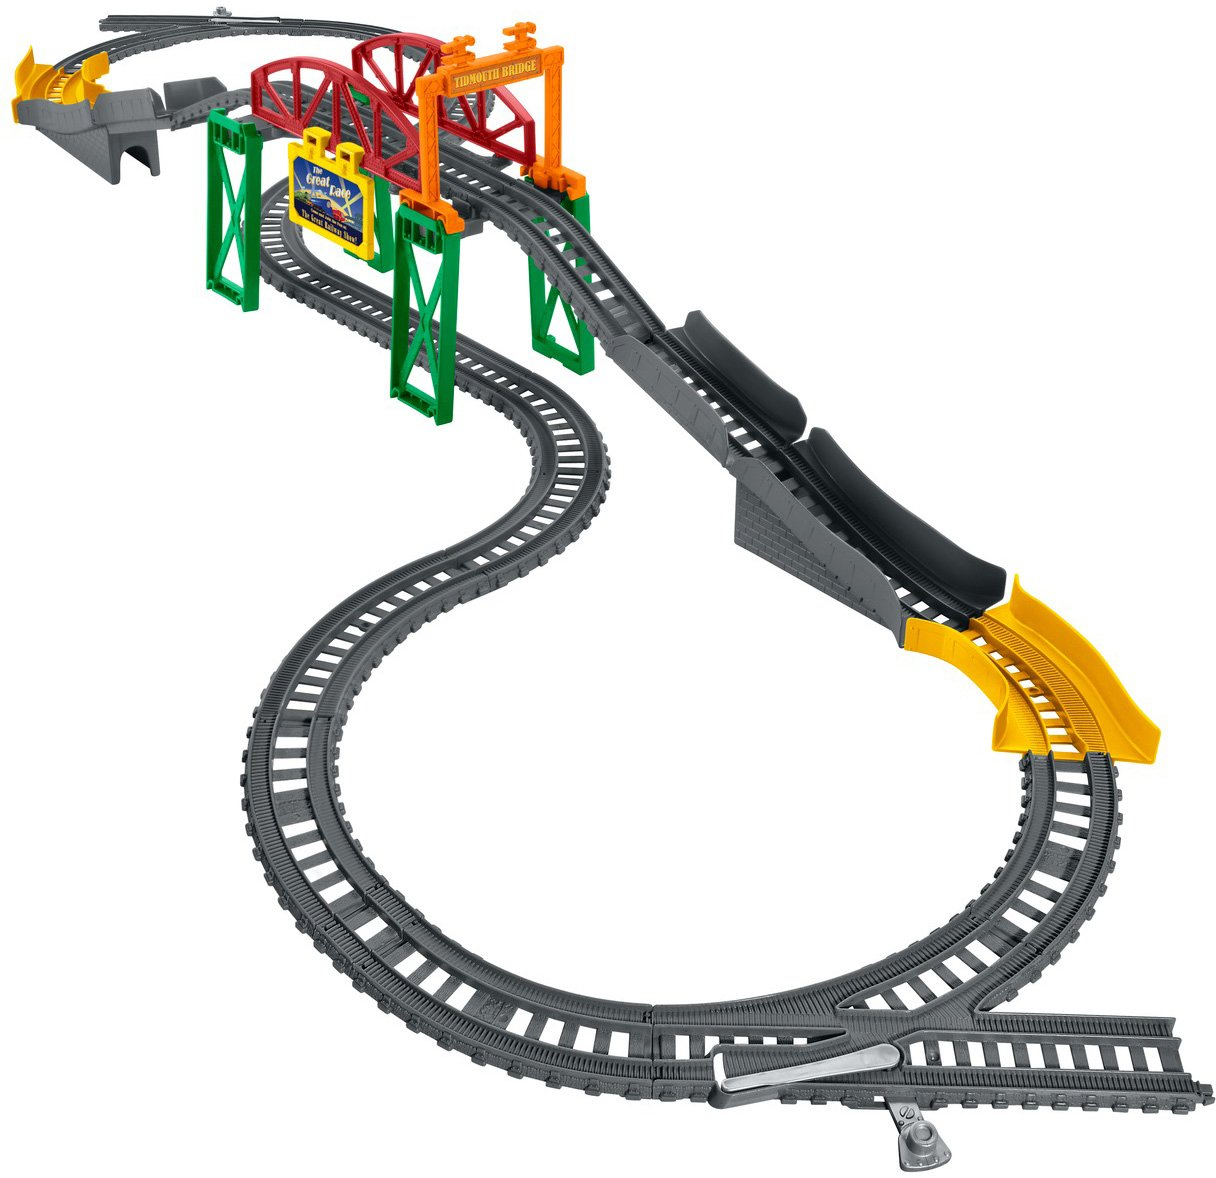 Fisher price thomas amp friends trackmaster treasure chase set new - Amazon Com Fisher Price Thomas Friends Trackmaster Over Under Tidmouth Bridge Toys Games